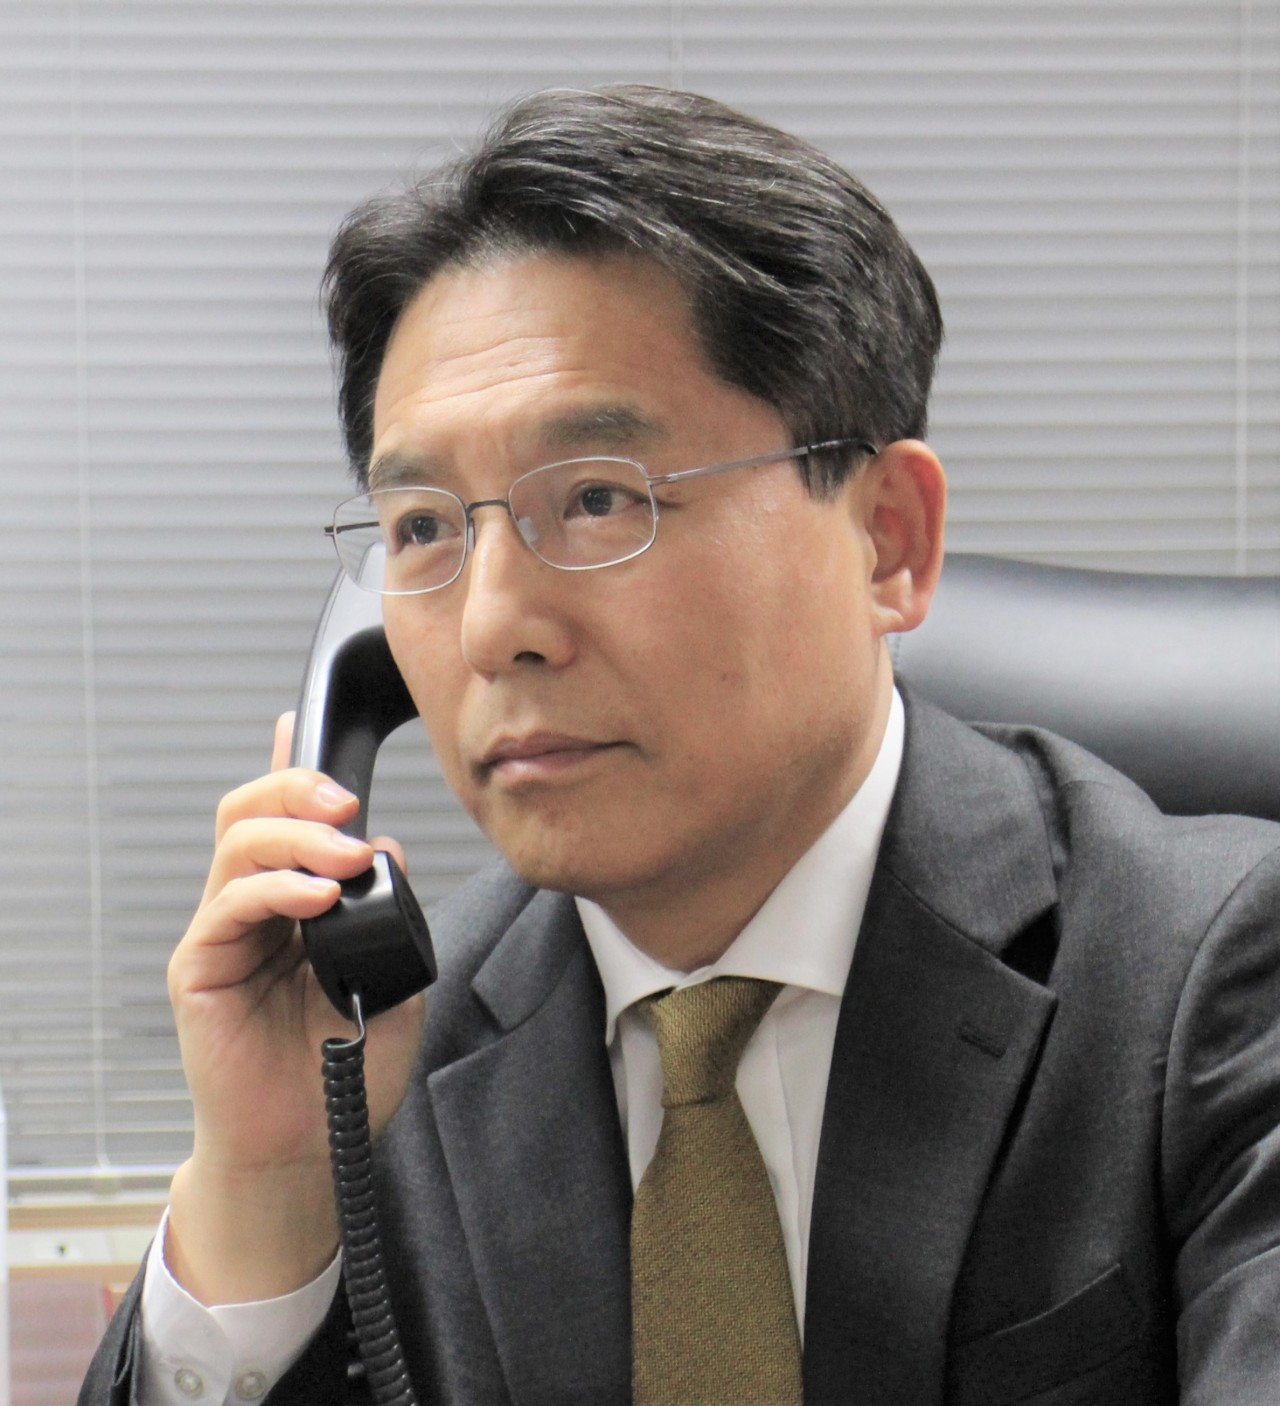 Noh Kyu-duk, South Korea`s new chief nuclear negotiator, is shown in this photo provided by the Foreign Ministry on Tuesday. (Ministry of Foreign Affairs)